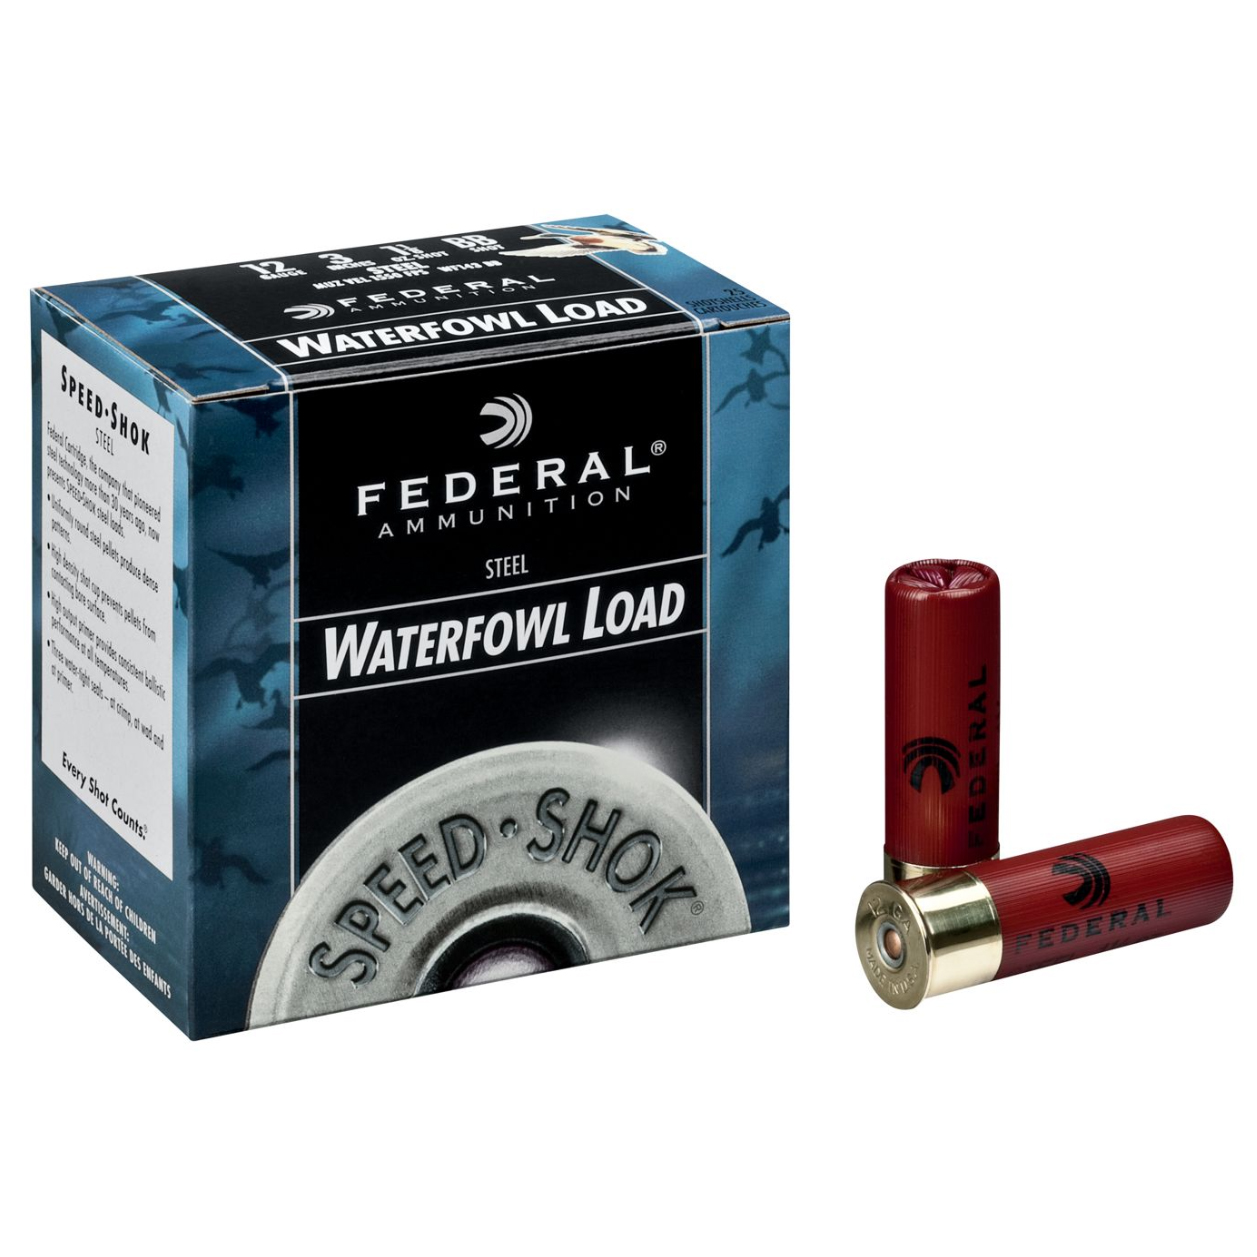 Federal Premium Speed-Shok Waterfowl Ammo, 10-ga, 3-1/2″, 1-1/2 oz, #2